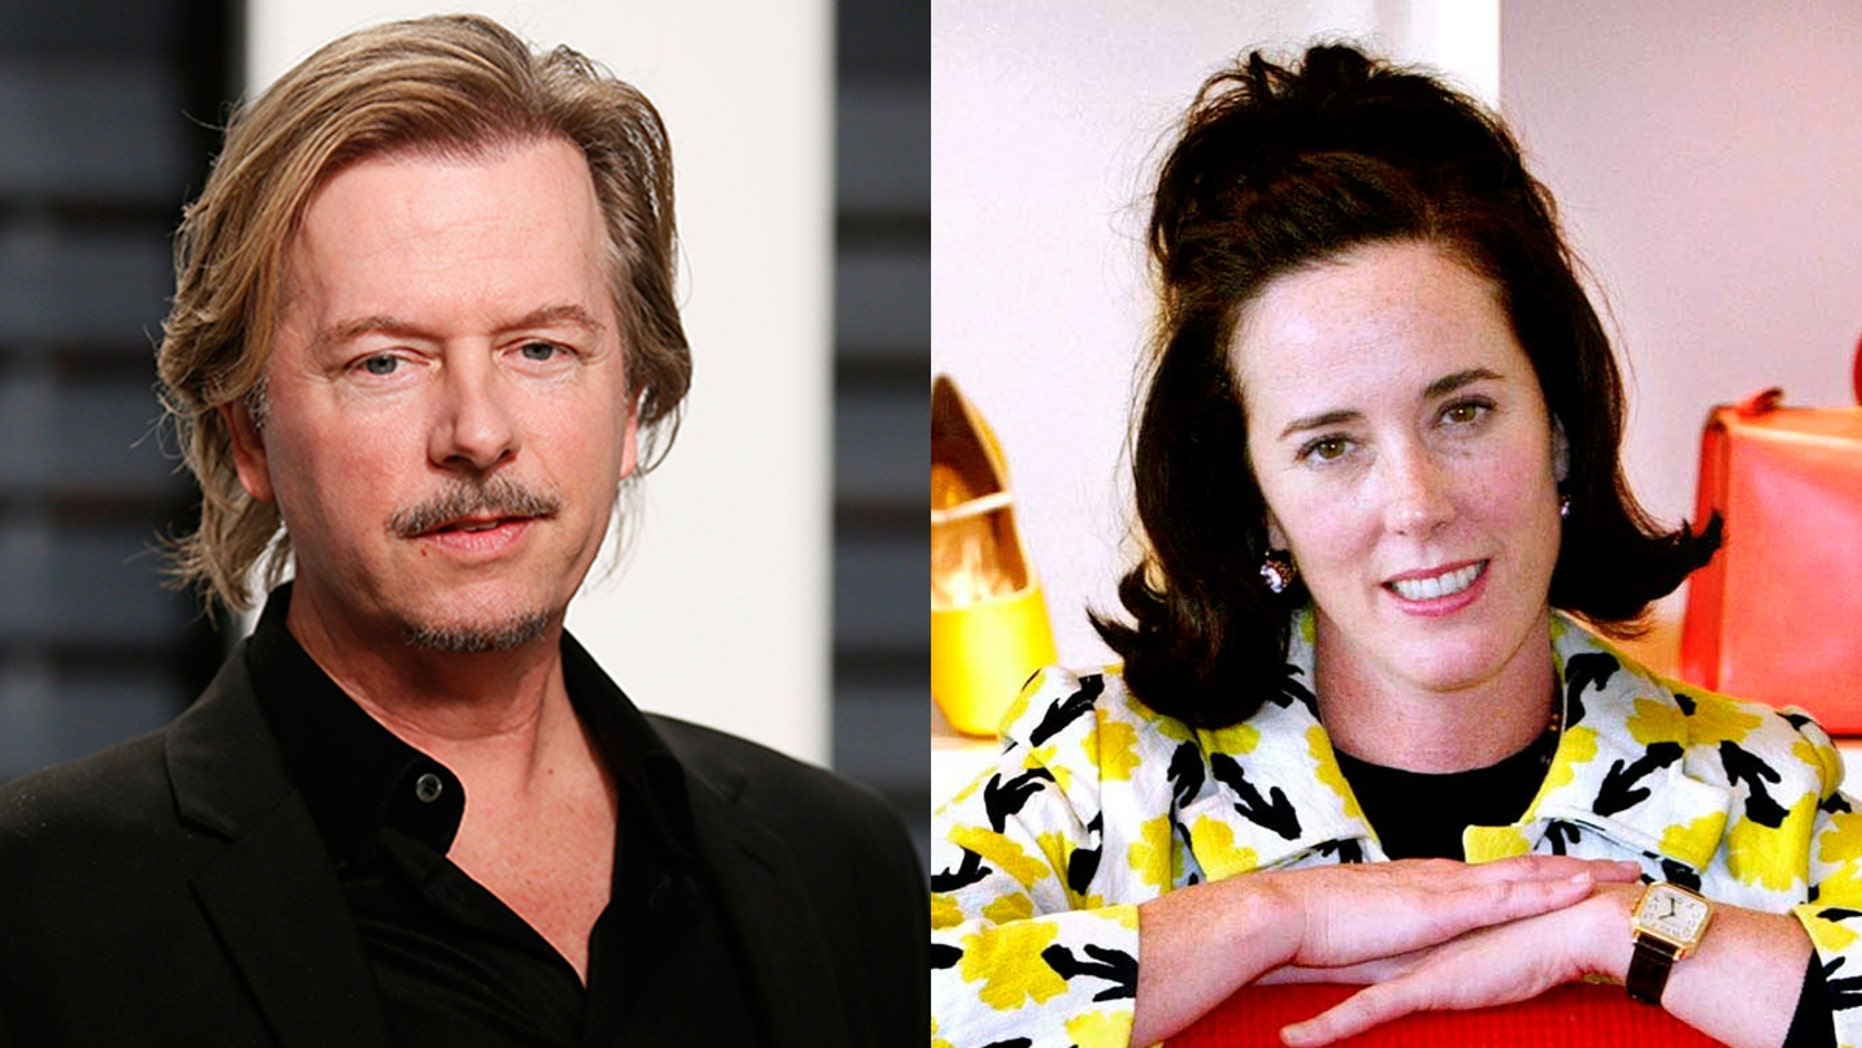 David Spade paid tribute to his late sister-in-law Kate, who was found dead by an apparent suicide on Tuesday. The famed fashion designer was 55.